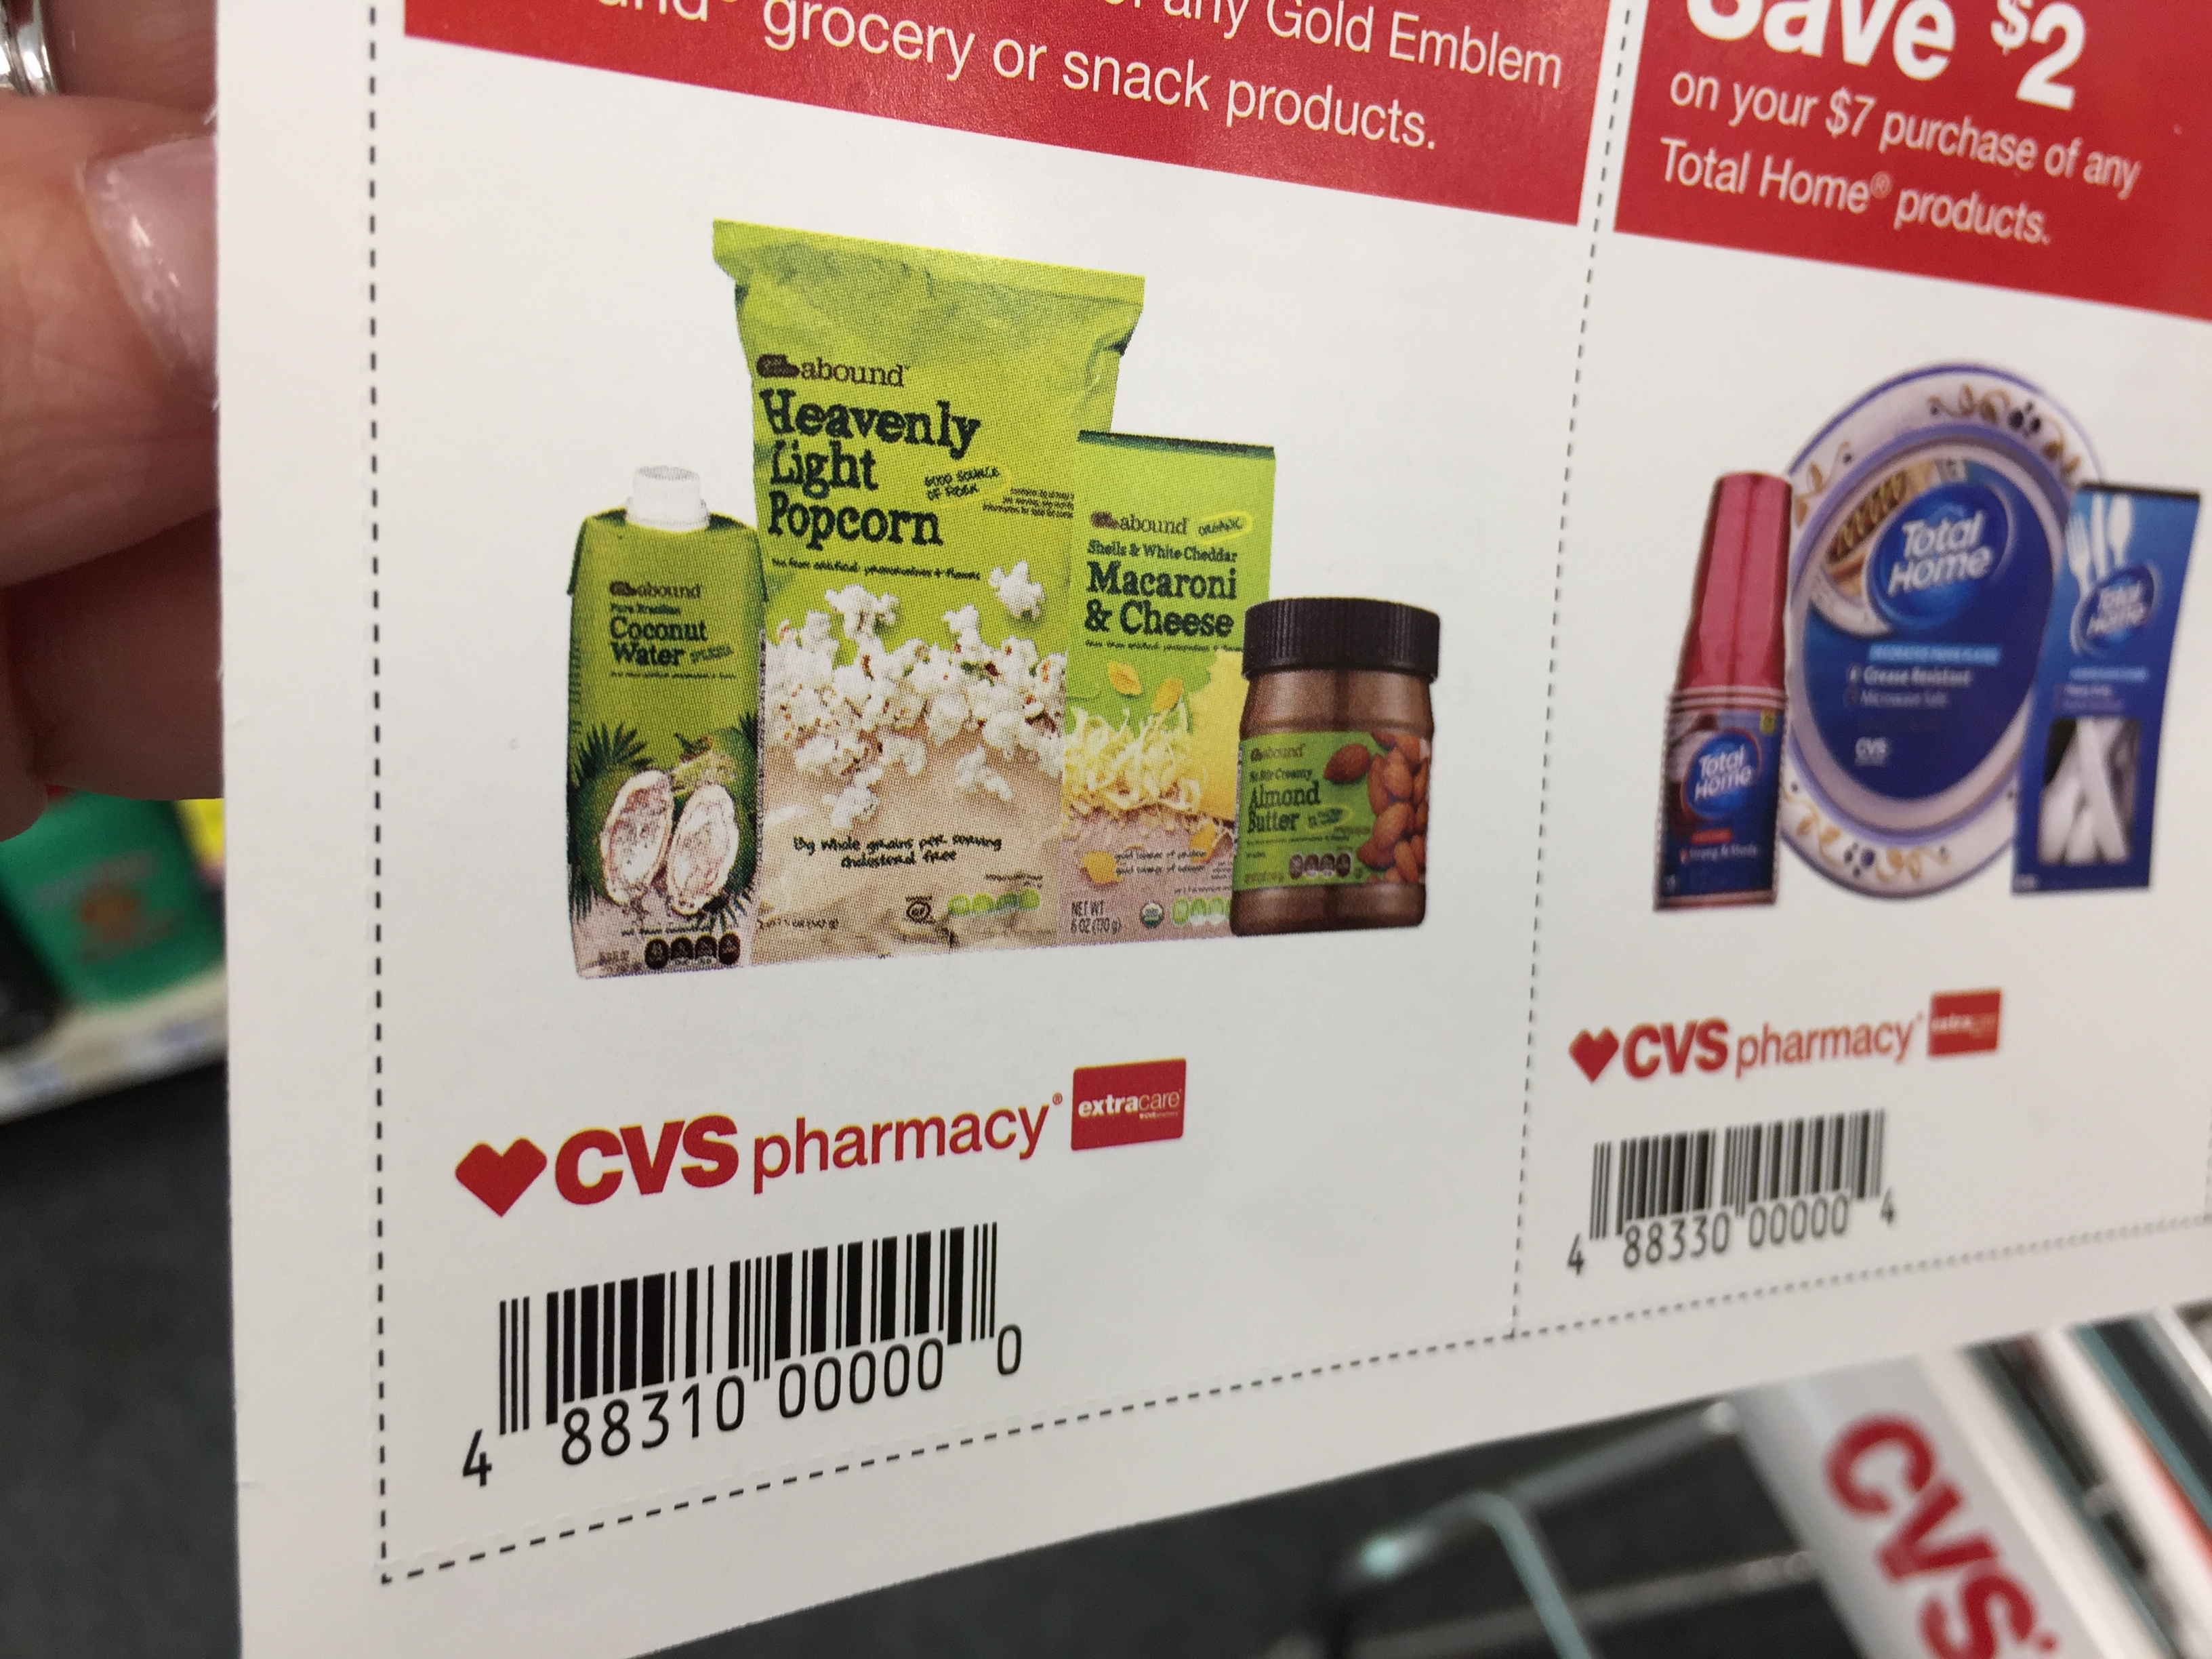 23 money saving tips you may not know about shopping at cvspharmacy – coupons